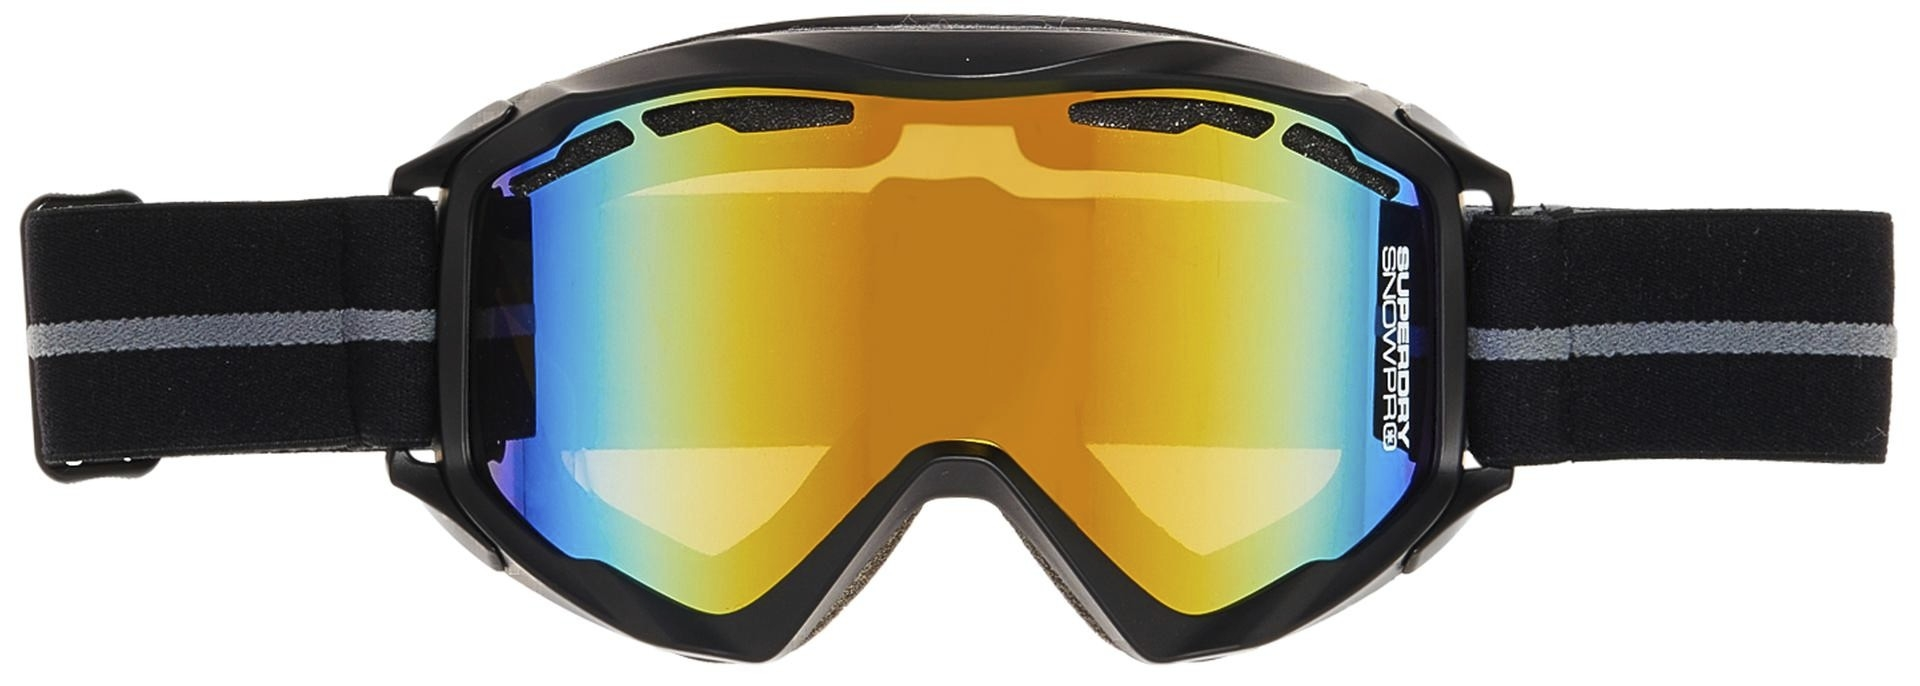 Superdry Black De Glacier Ski Orange Masque Snow 7IYbf6ymgv